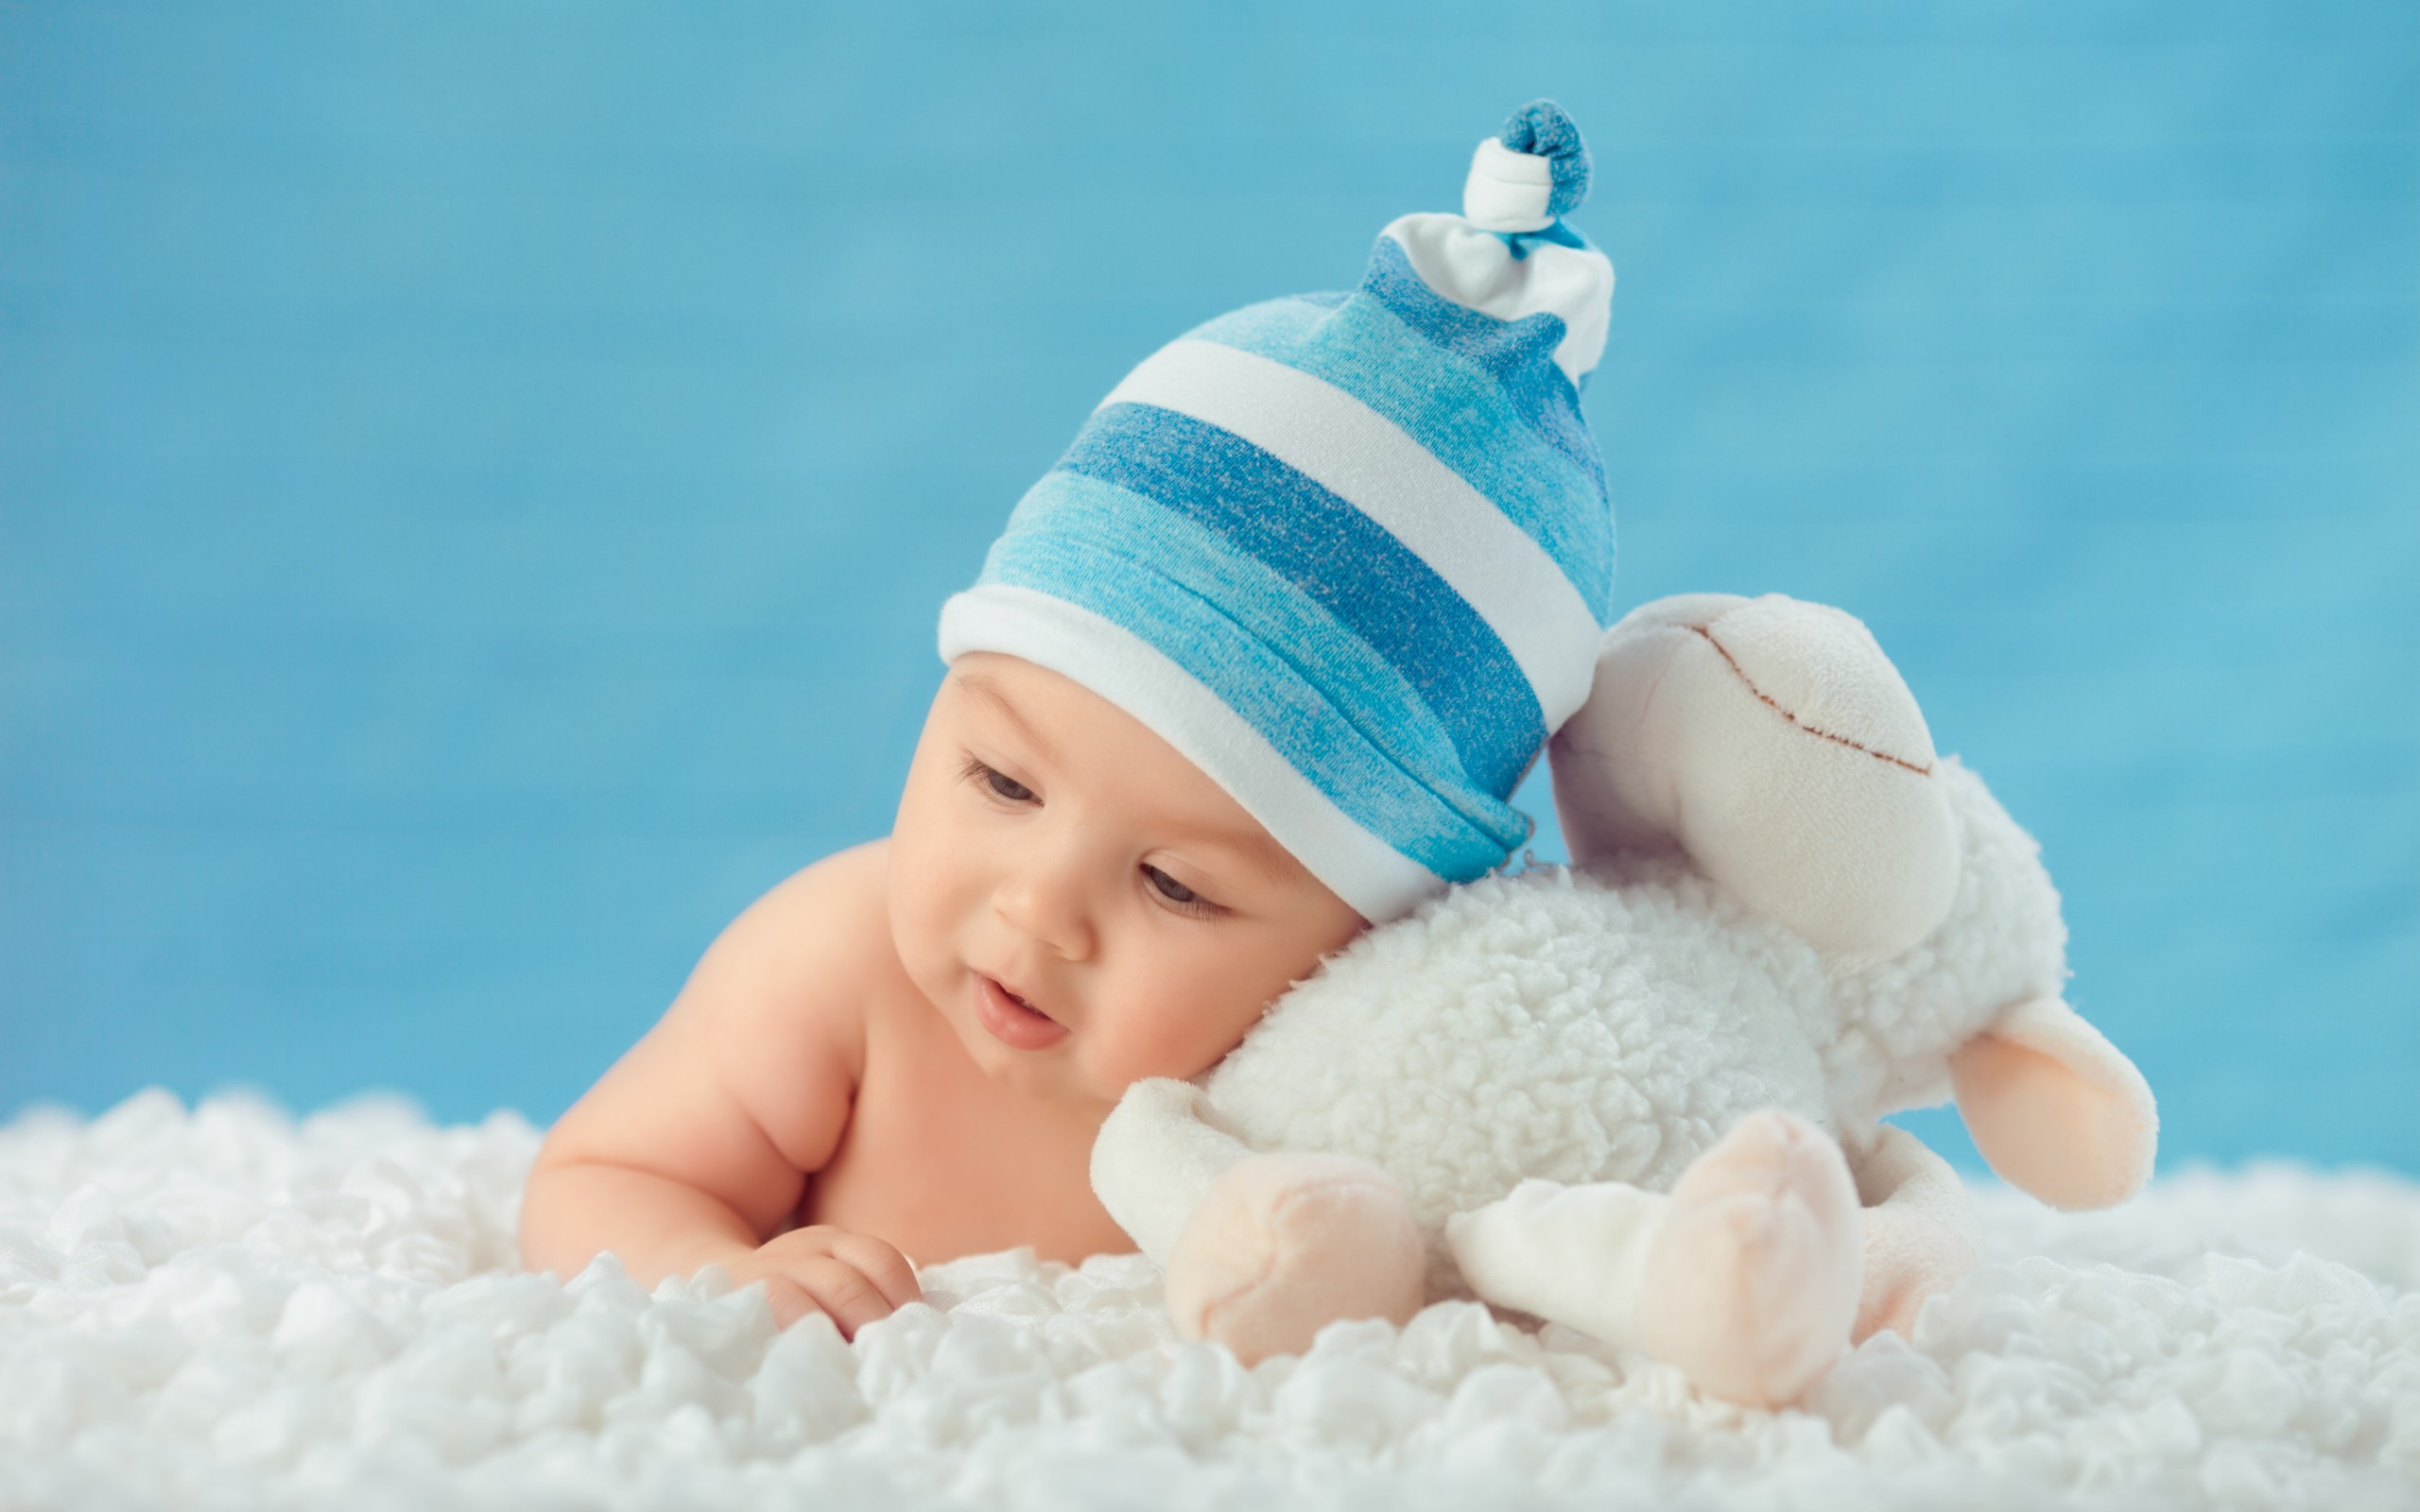 New born baby hd wallpapers this wallpaper